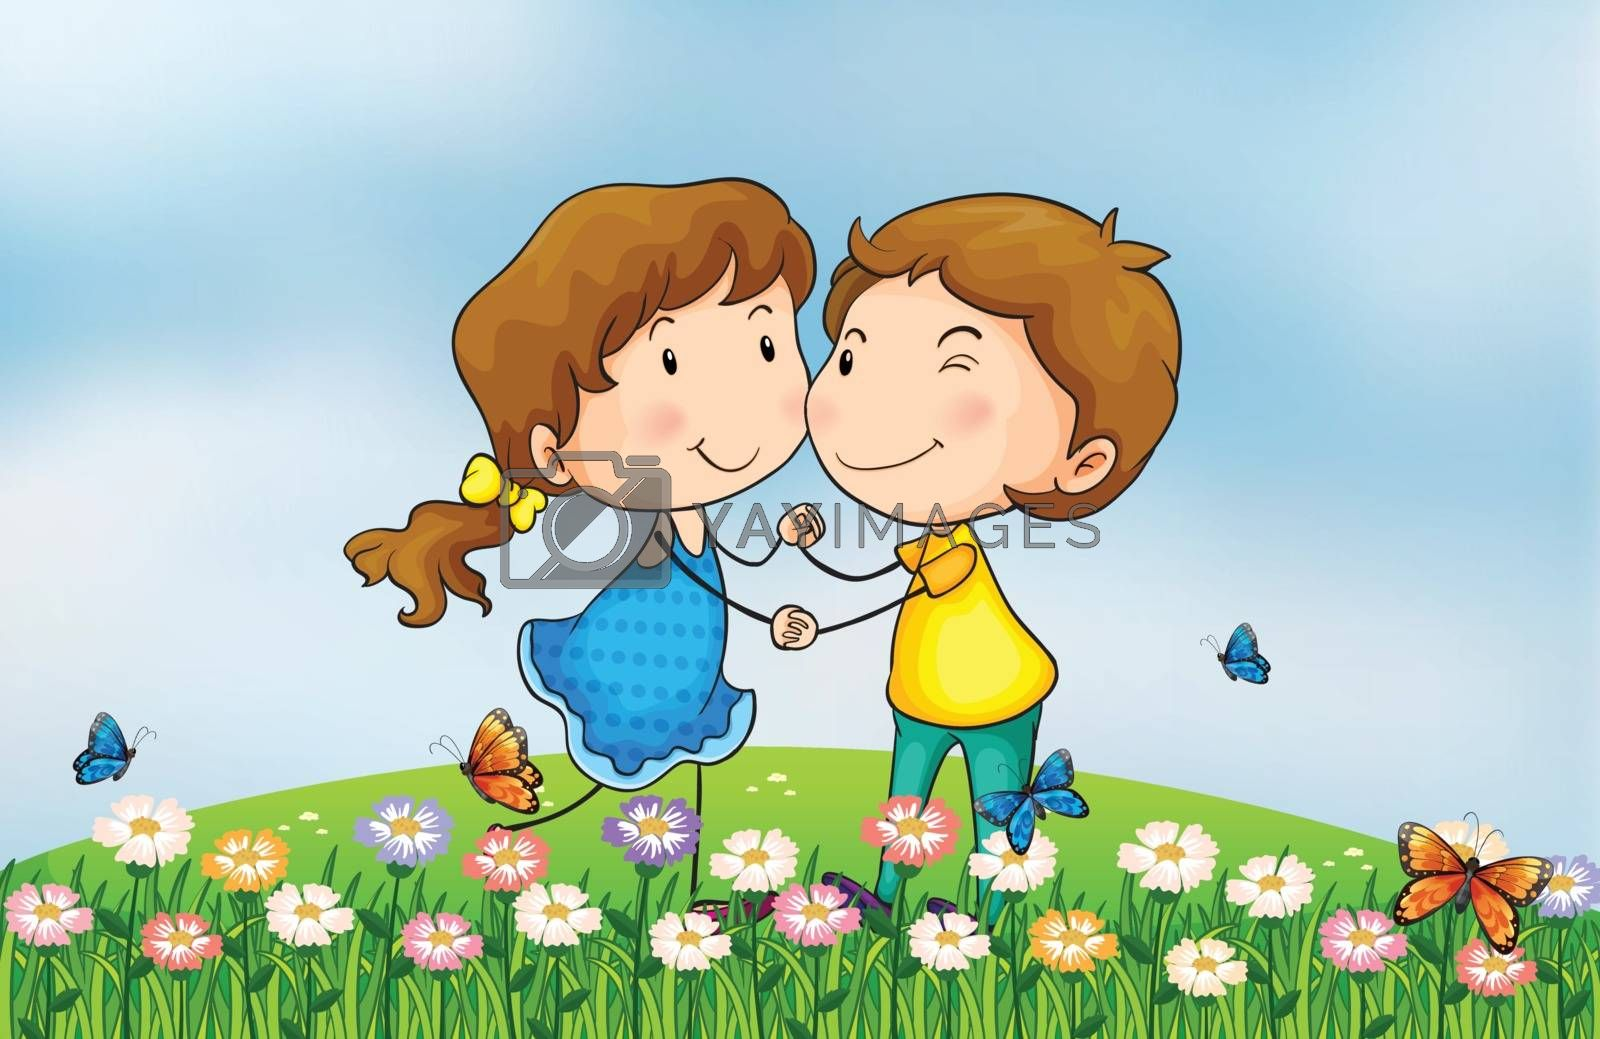 Illustration of a smiling girl and a boy in a beautiful nature